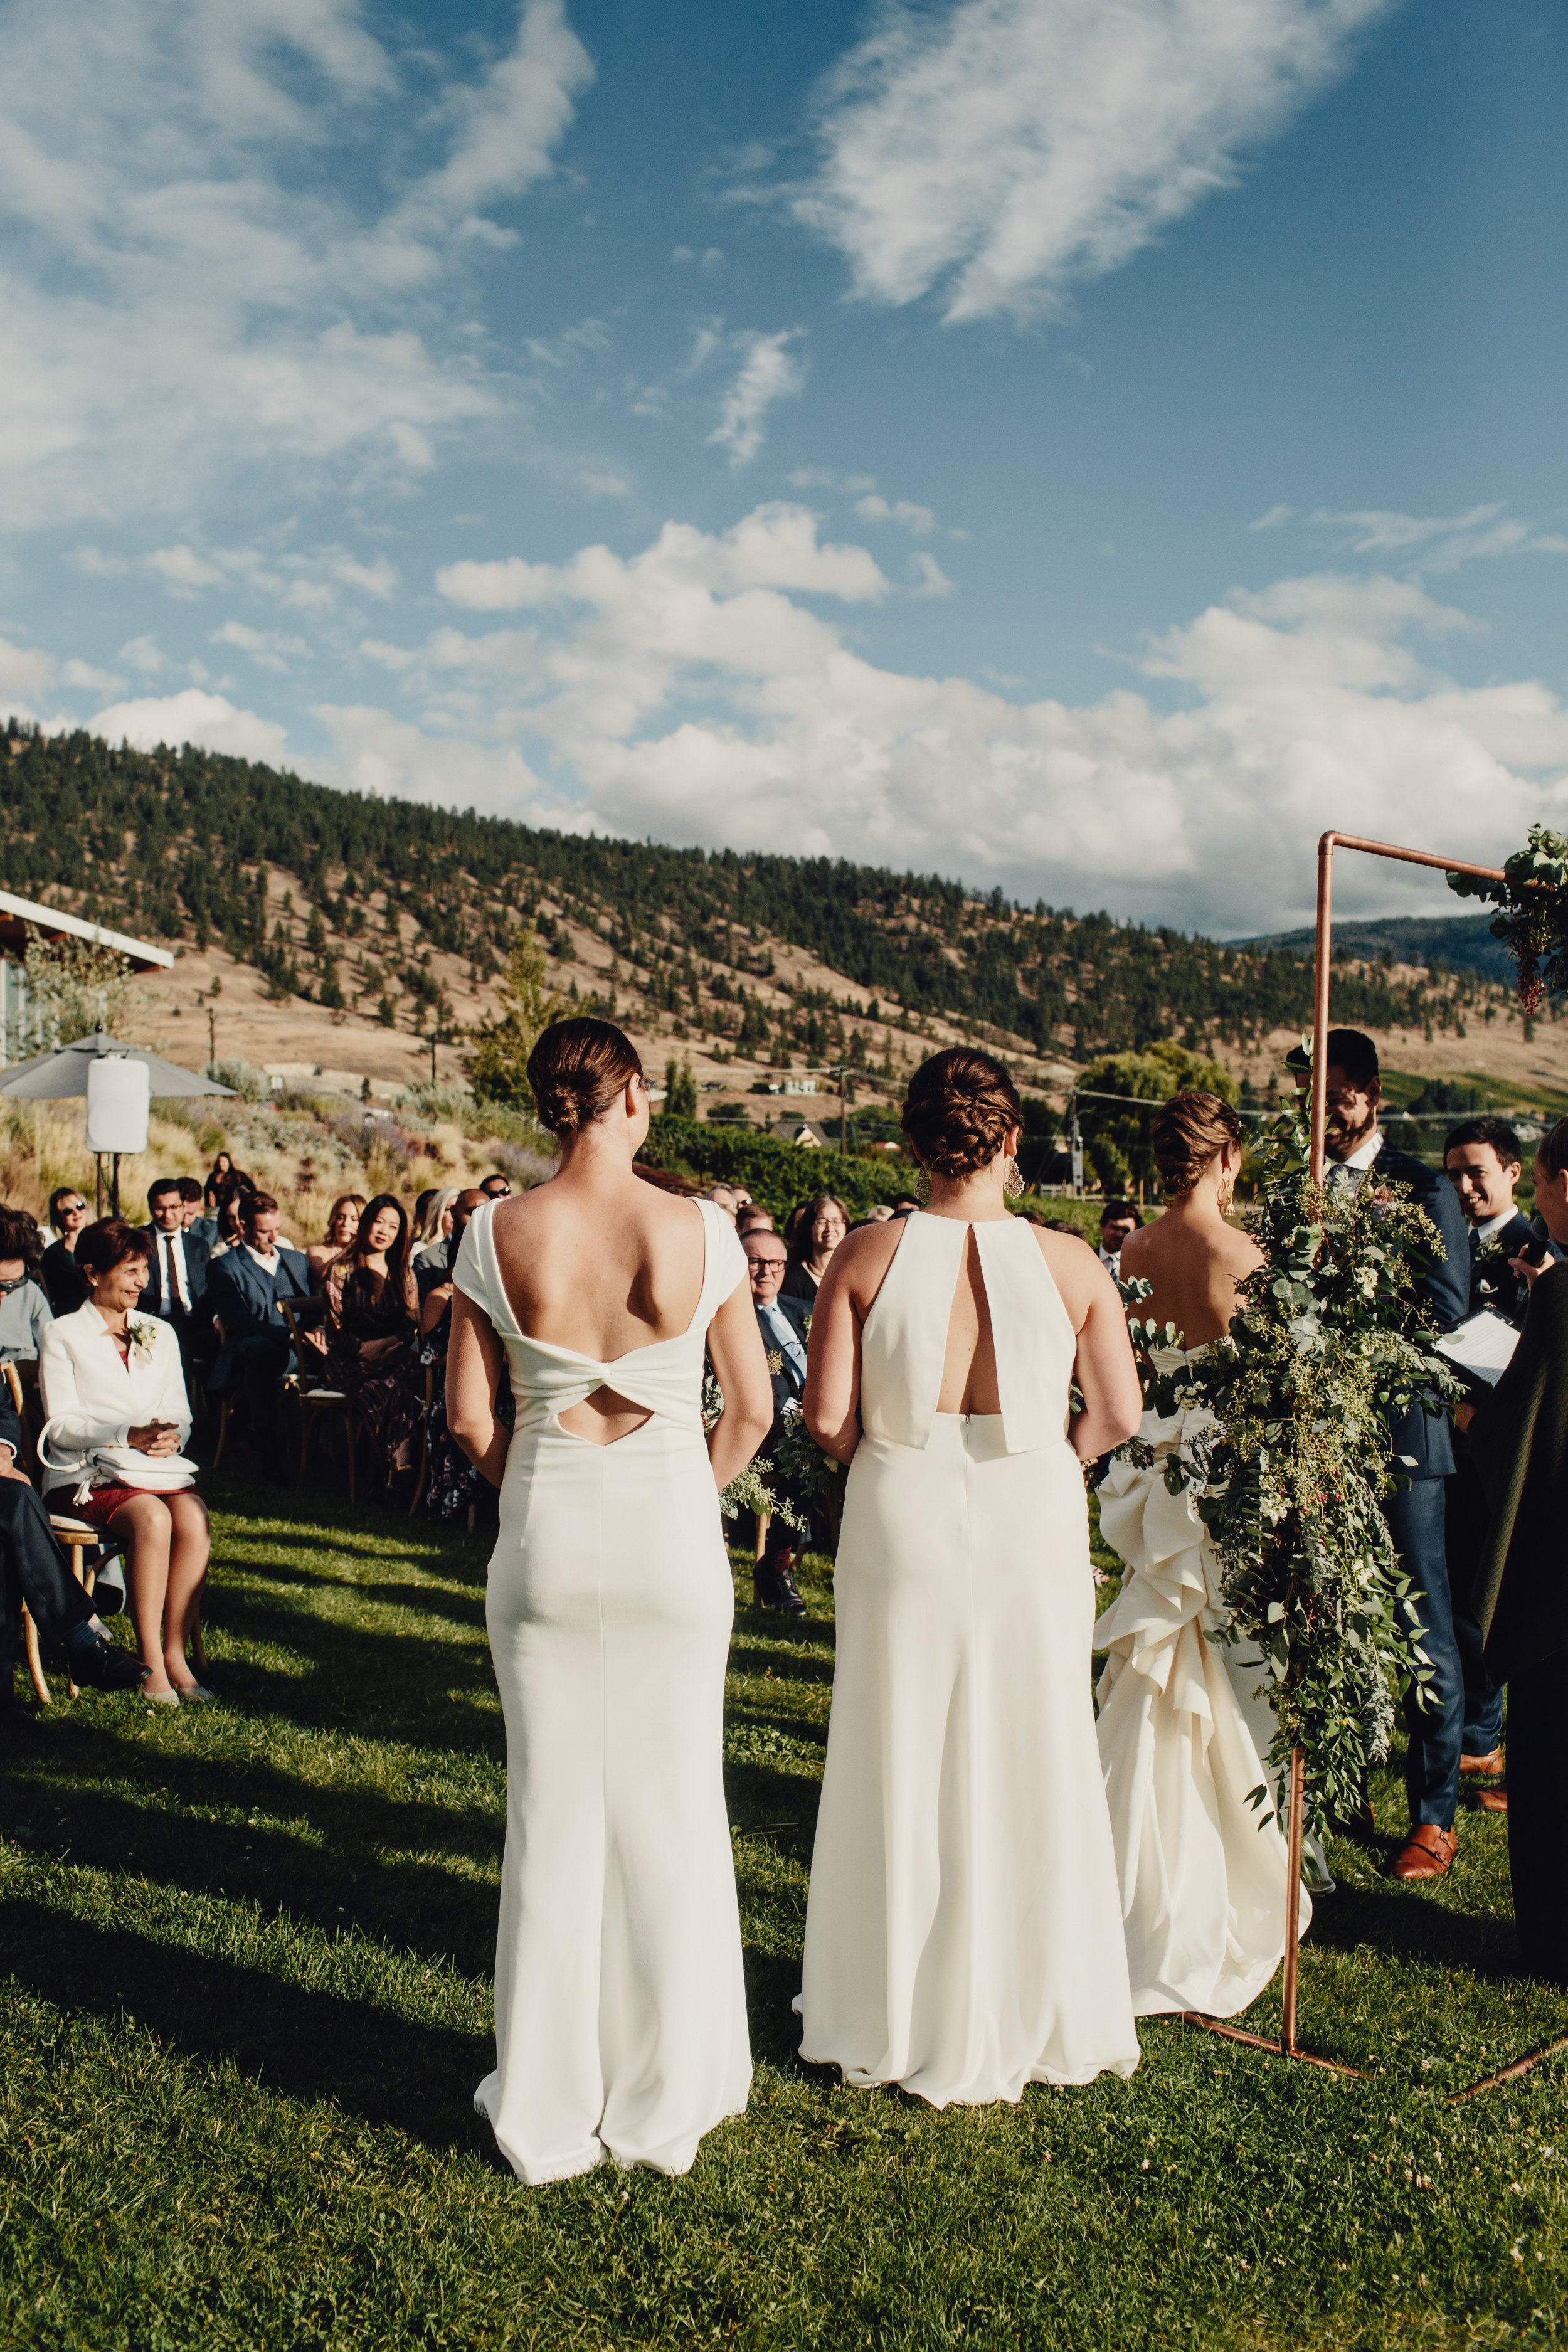 Poplar-grove-wedding-photos-okanagan0064.JPG